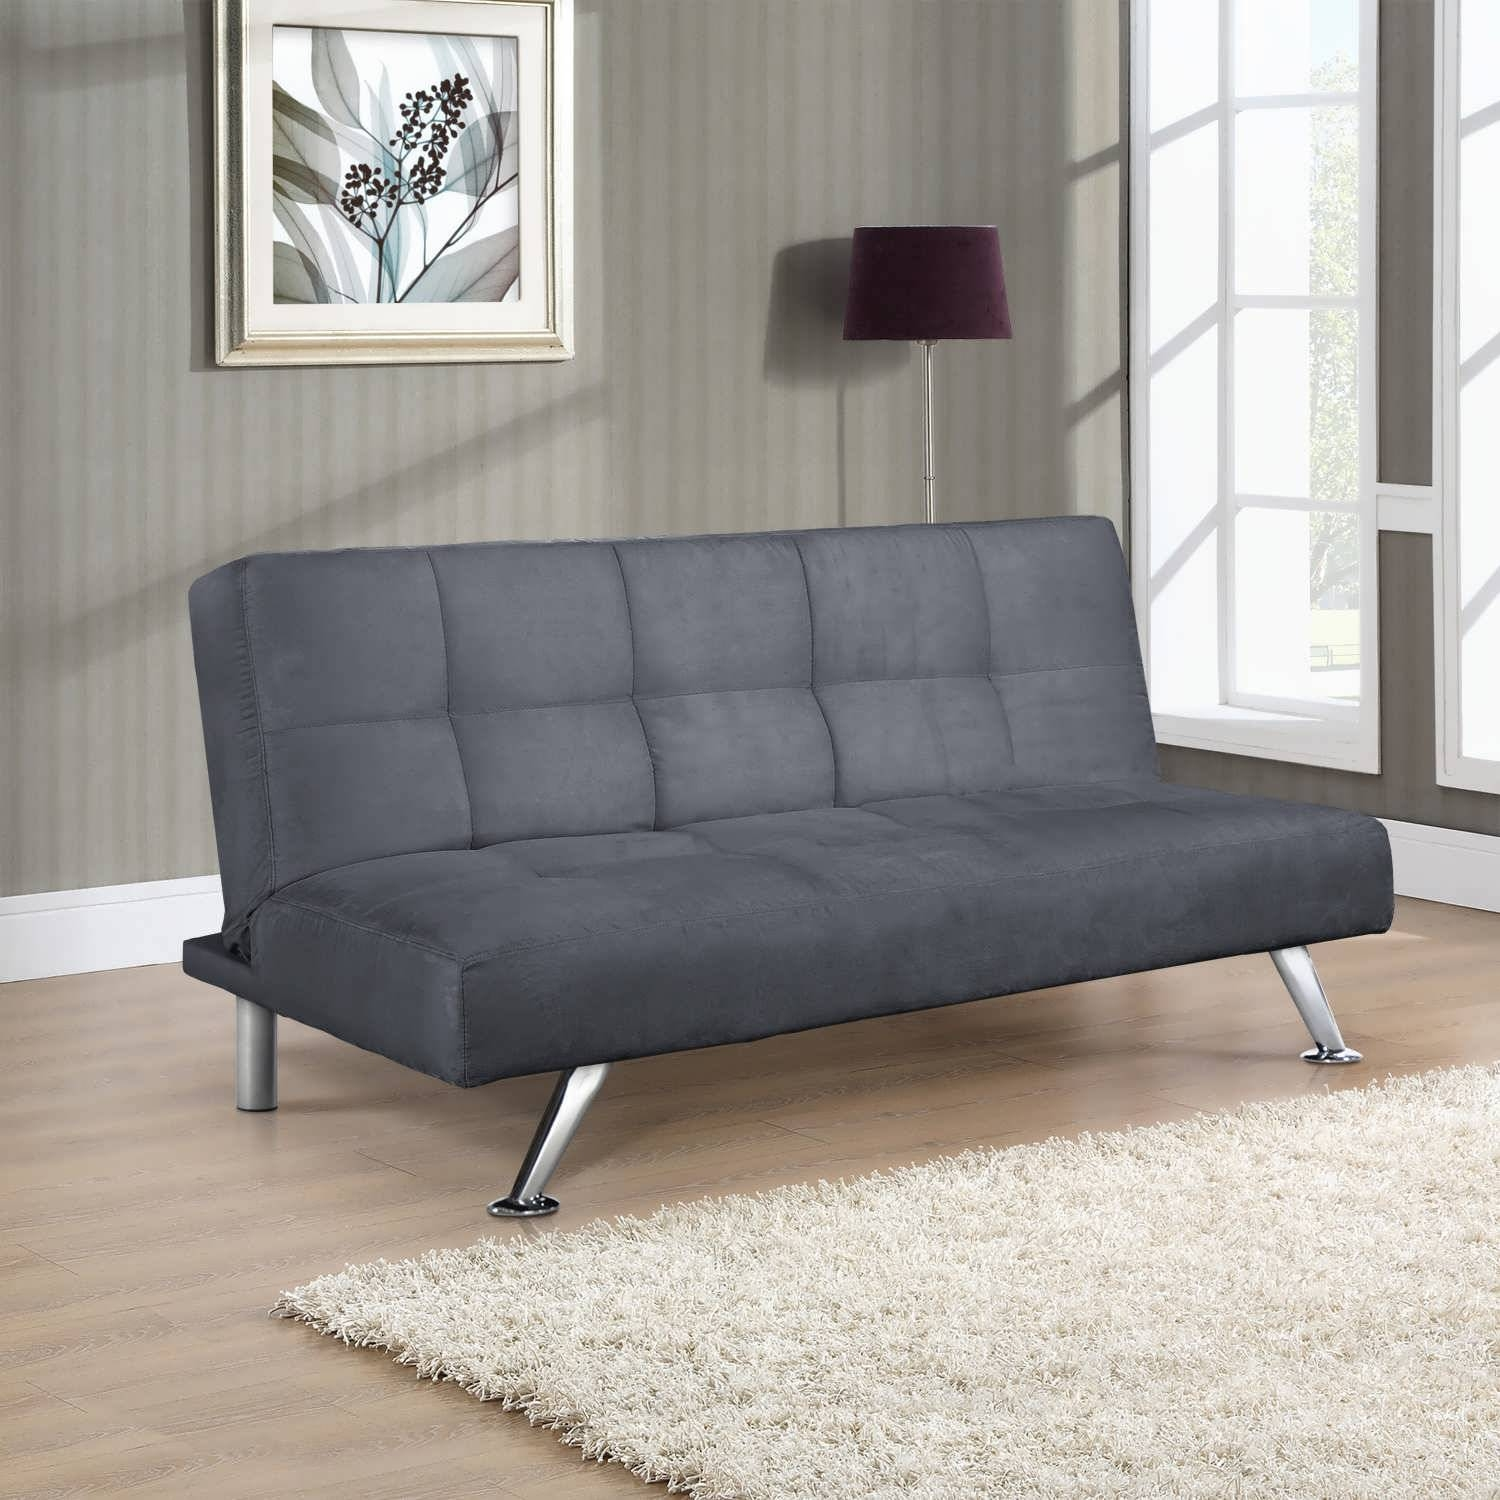 Sofa : Small Sofas For Small Rooms Three Seater Sofa Small Office intended for Small Office Sofas (Image 13 of 15)